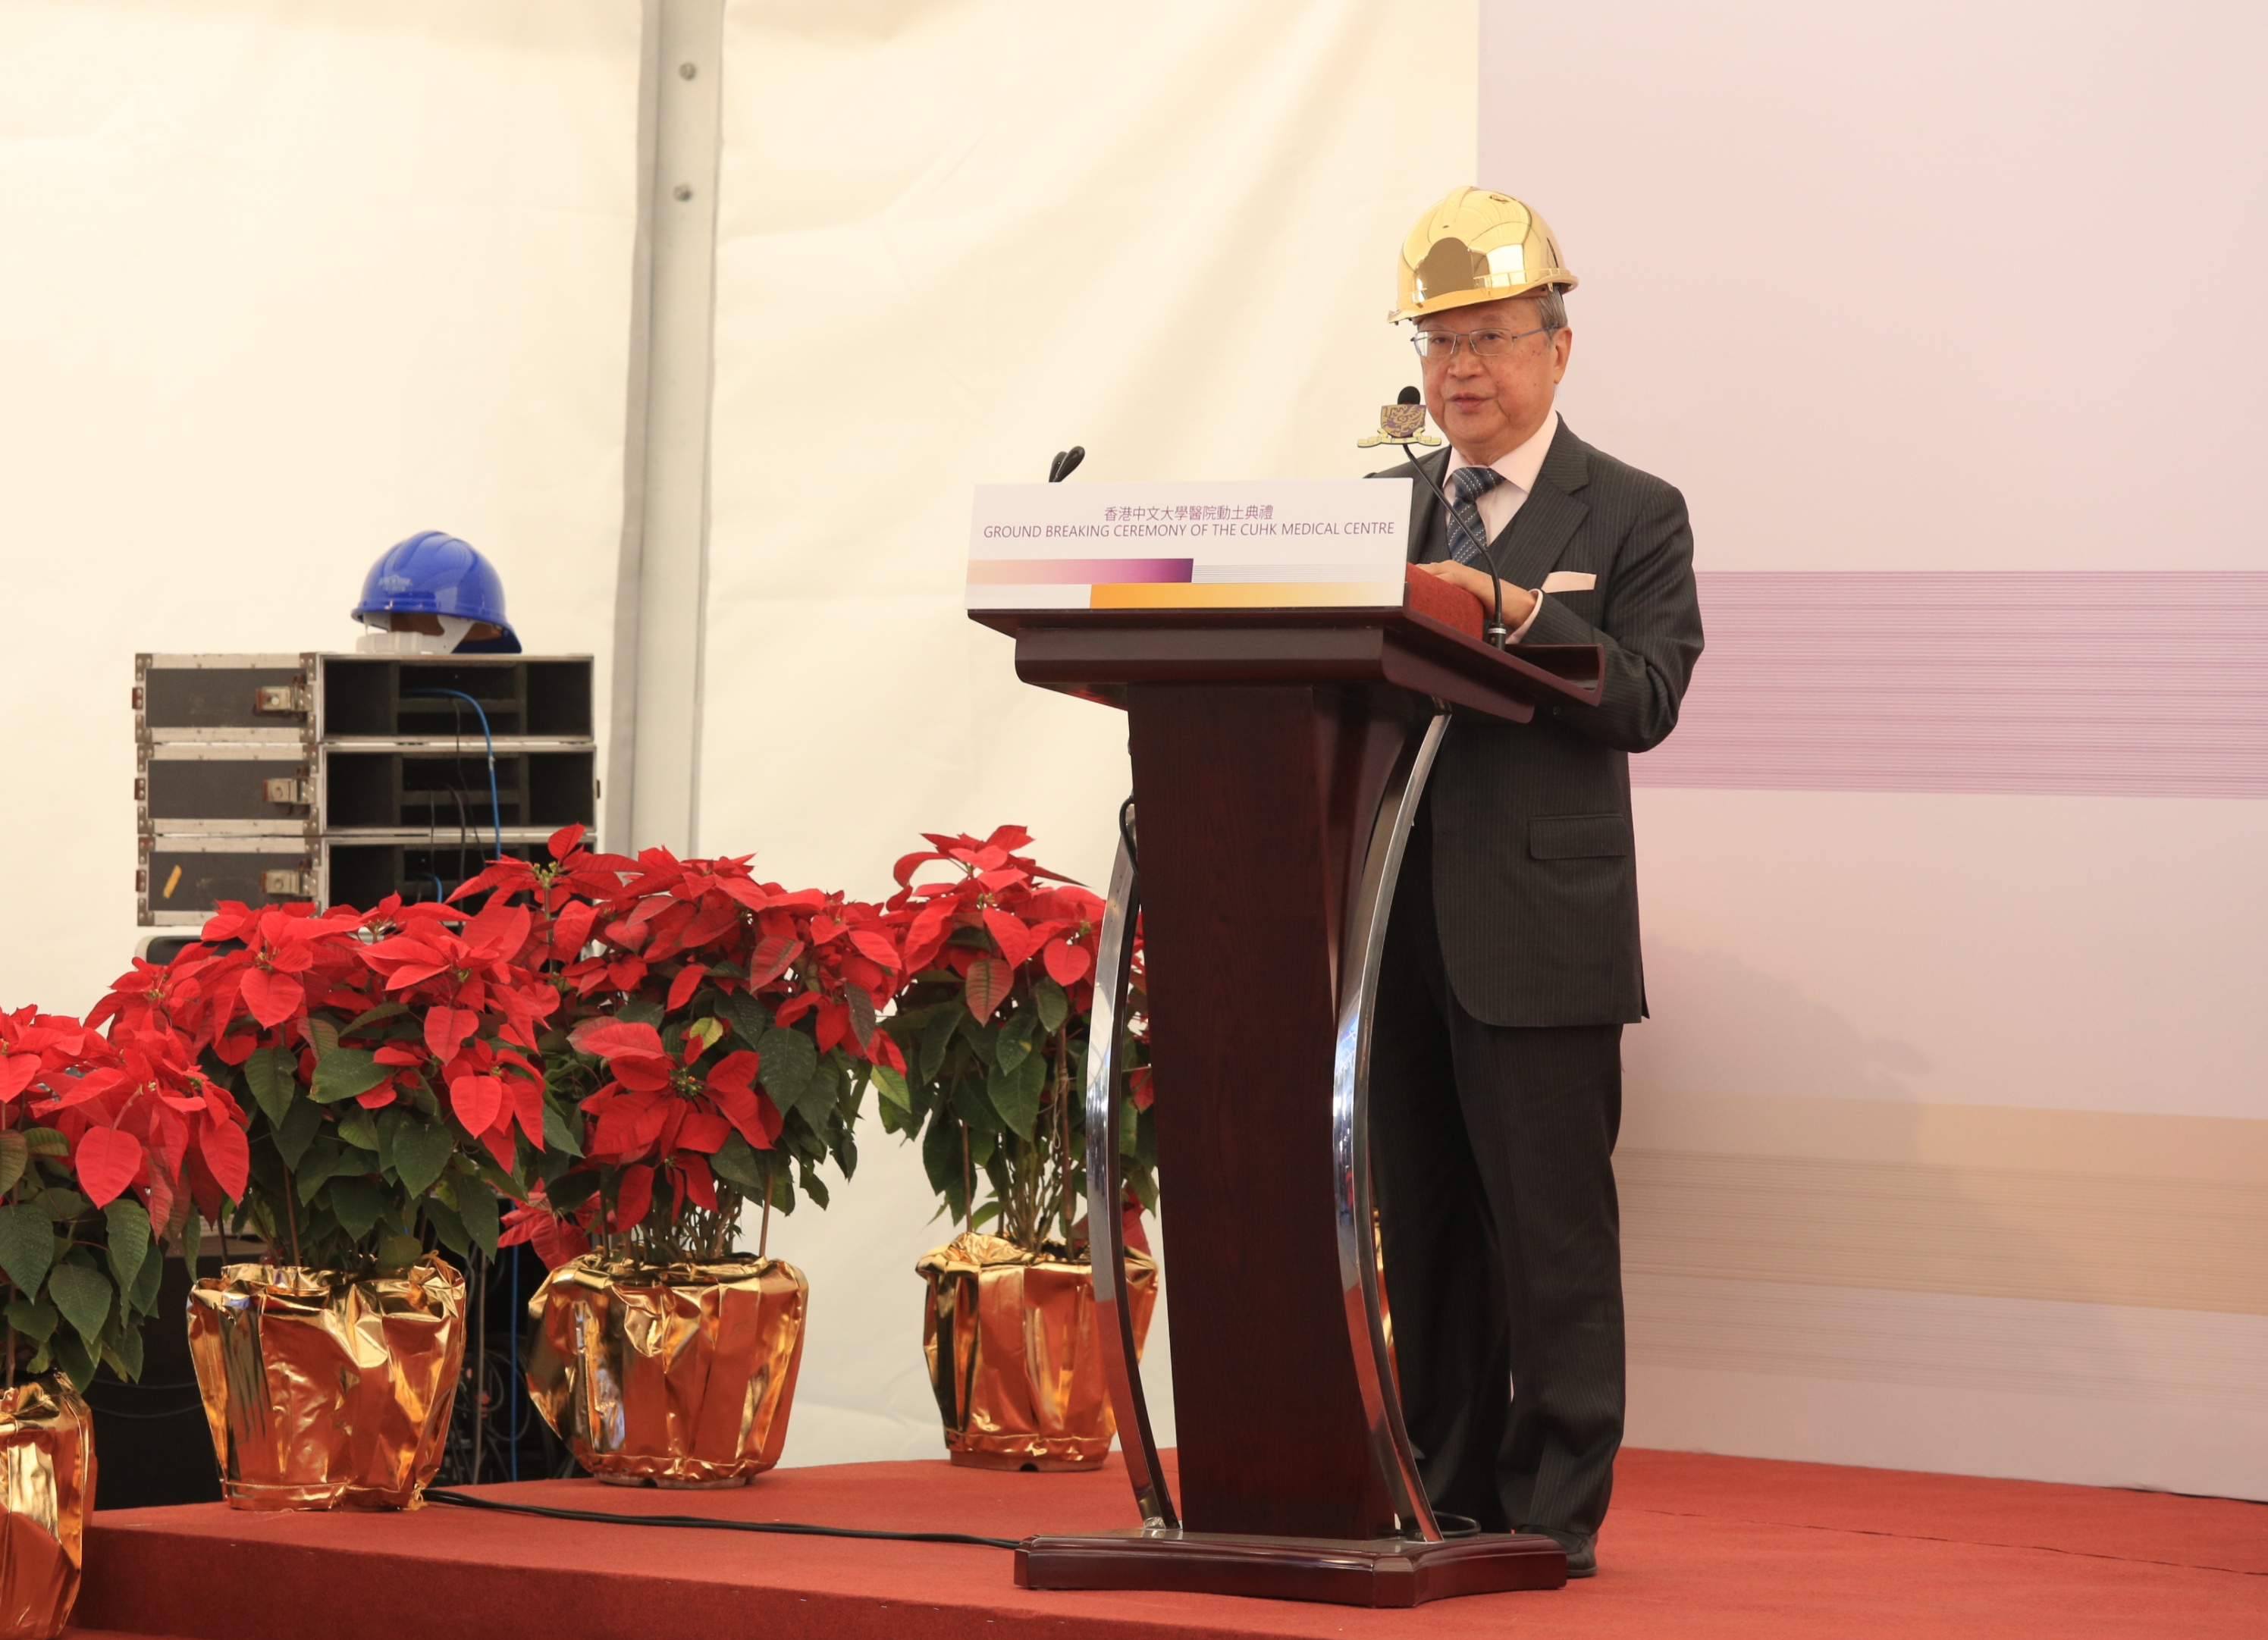 Dr. Norman N.P. Leung, Chairman of the Council, CUHK delivers a thank you speech.